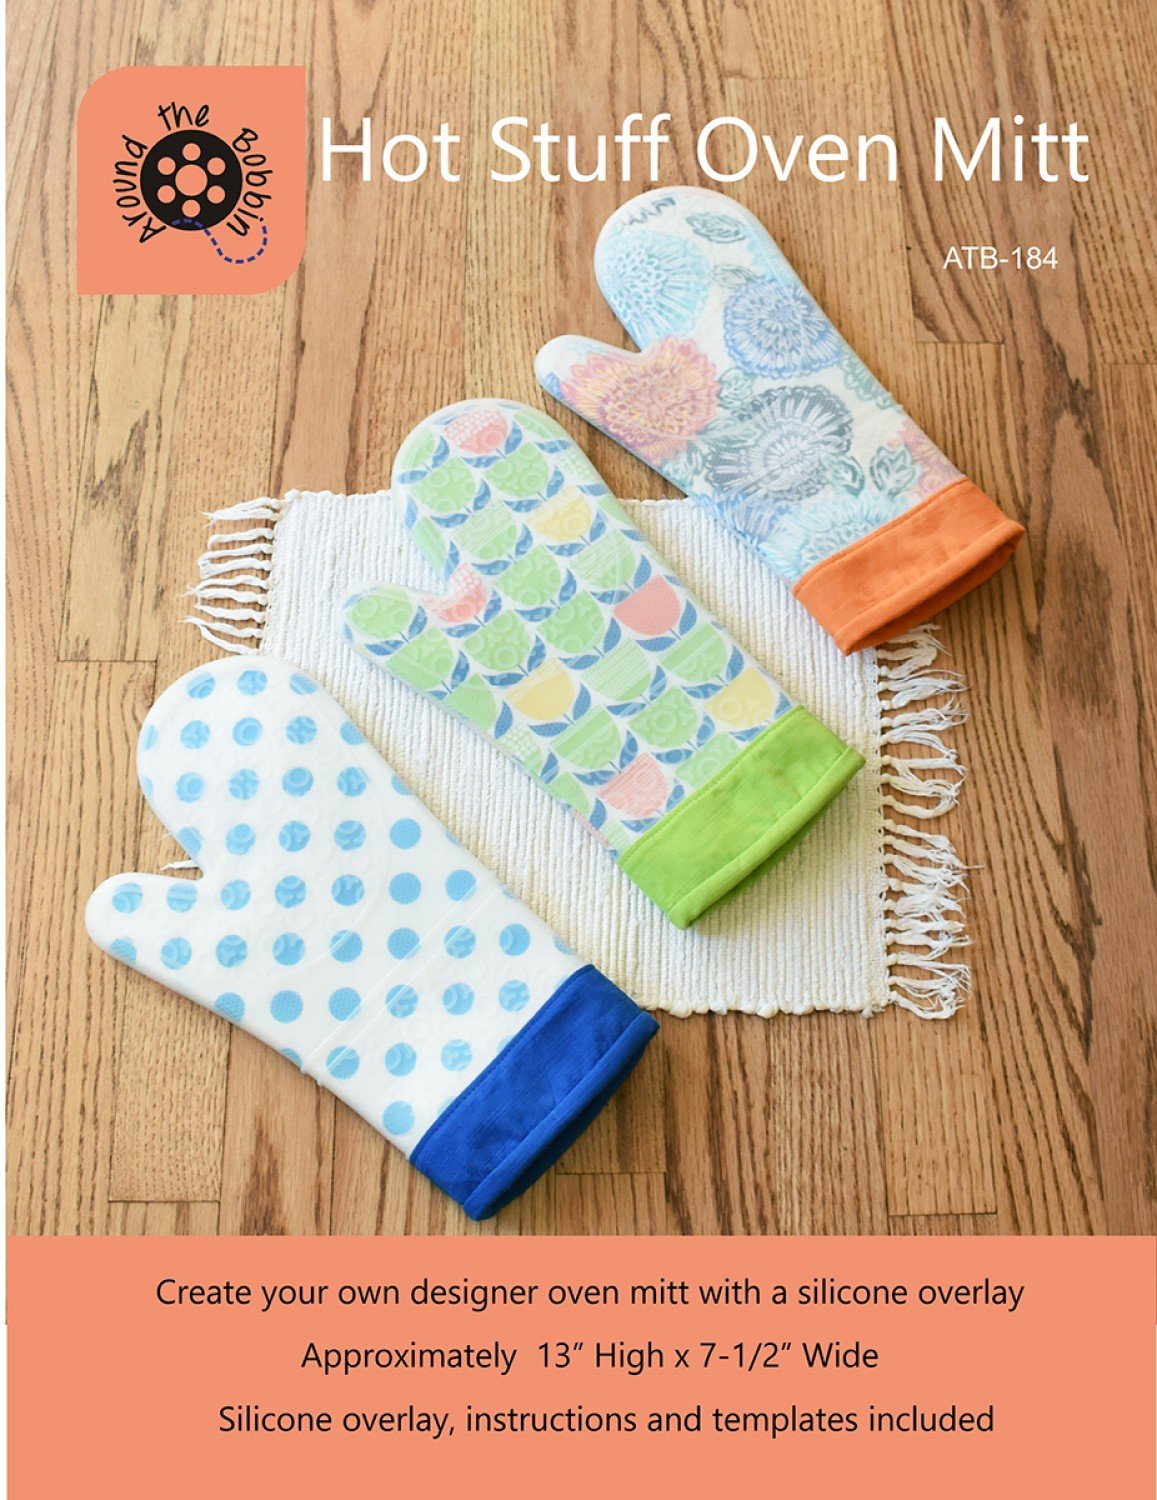 Hot Stuff Oven Mitt by Around the Bobbin